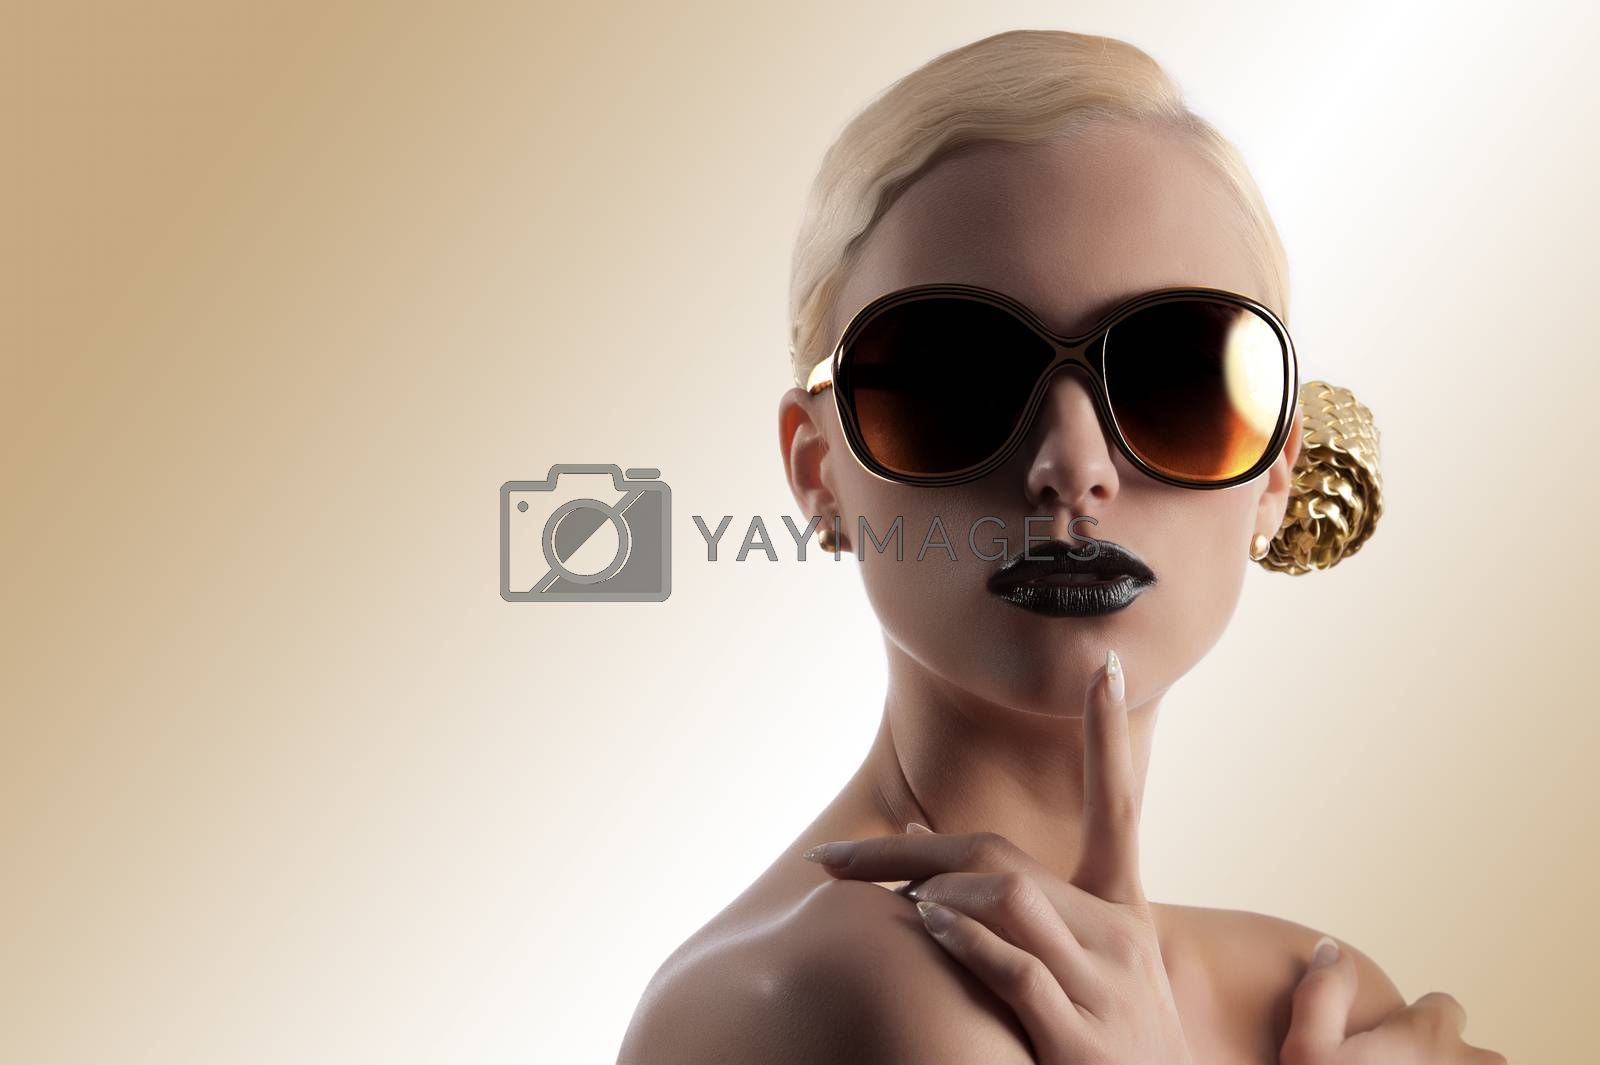 Royalty free image of fashion shot of blond girl with golden sunglasses by fotoCD